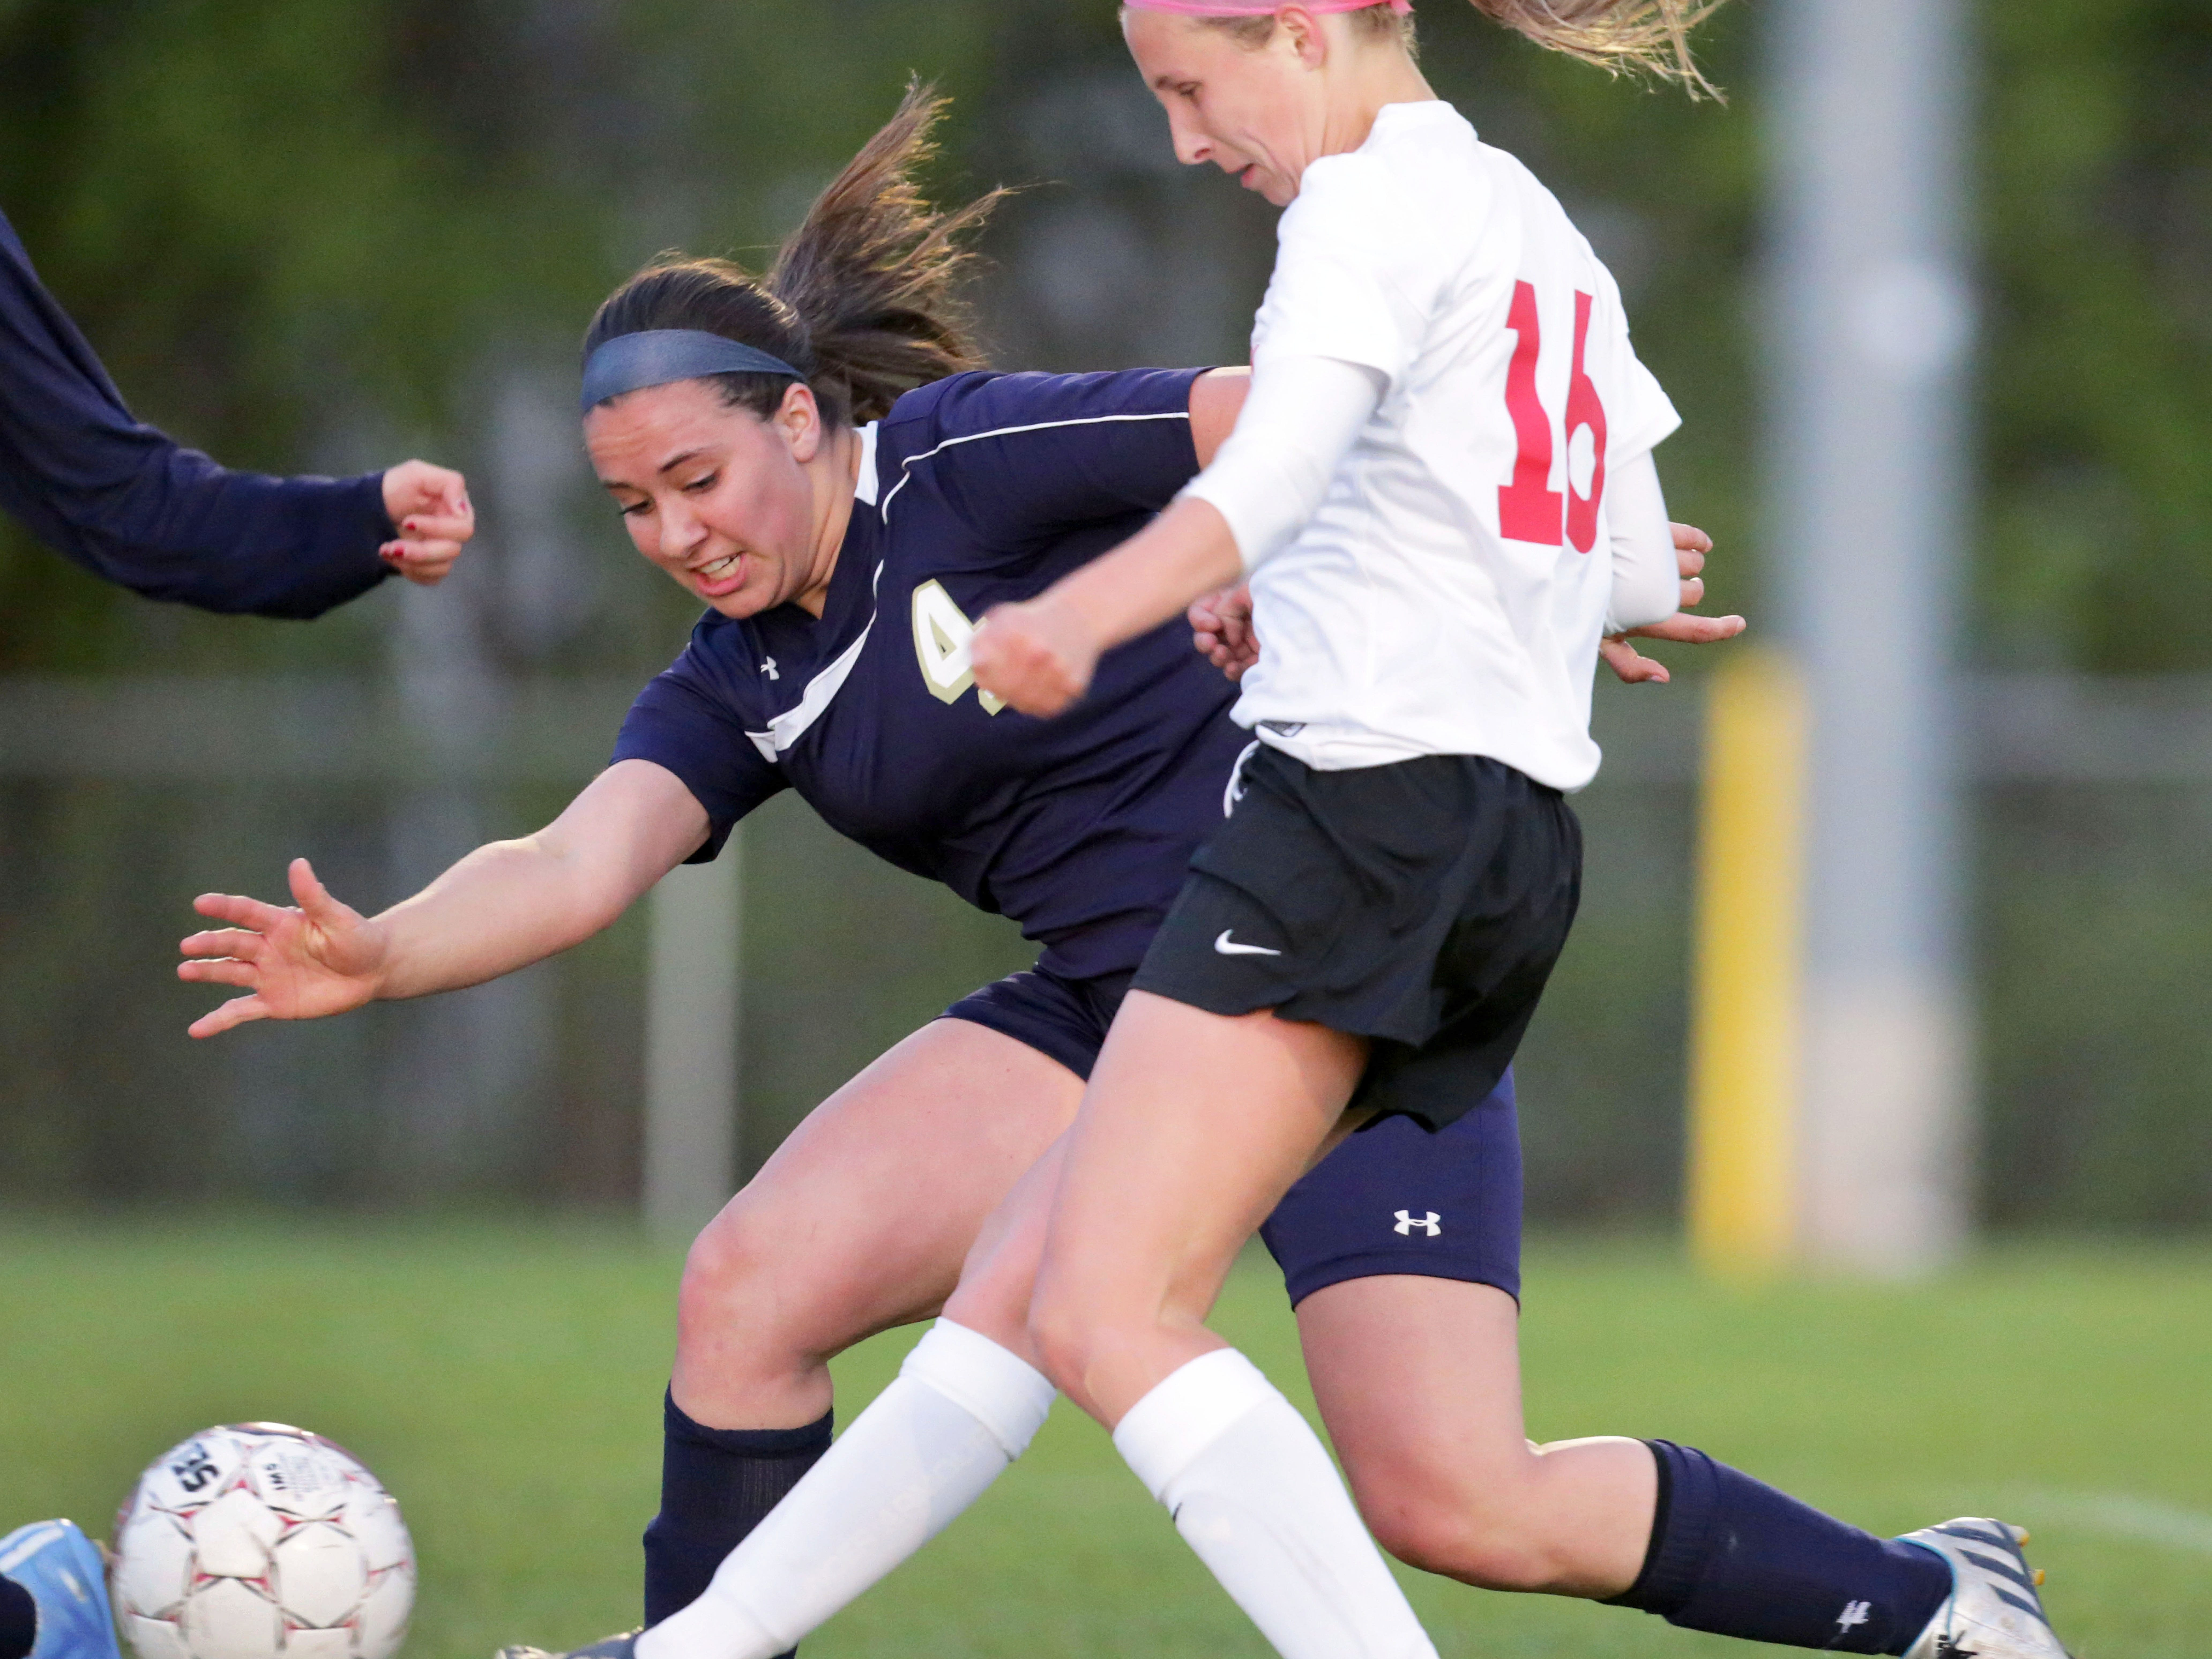 Rachel Sanderfoot of Kimberly (right) kicks the ball into the goal as Greta Brown of Appleton North tries for a stop during a Fox Valley Association girls' soccer game Tuesday in Kimberly.